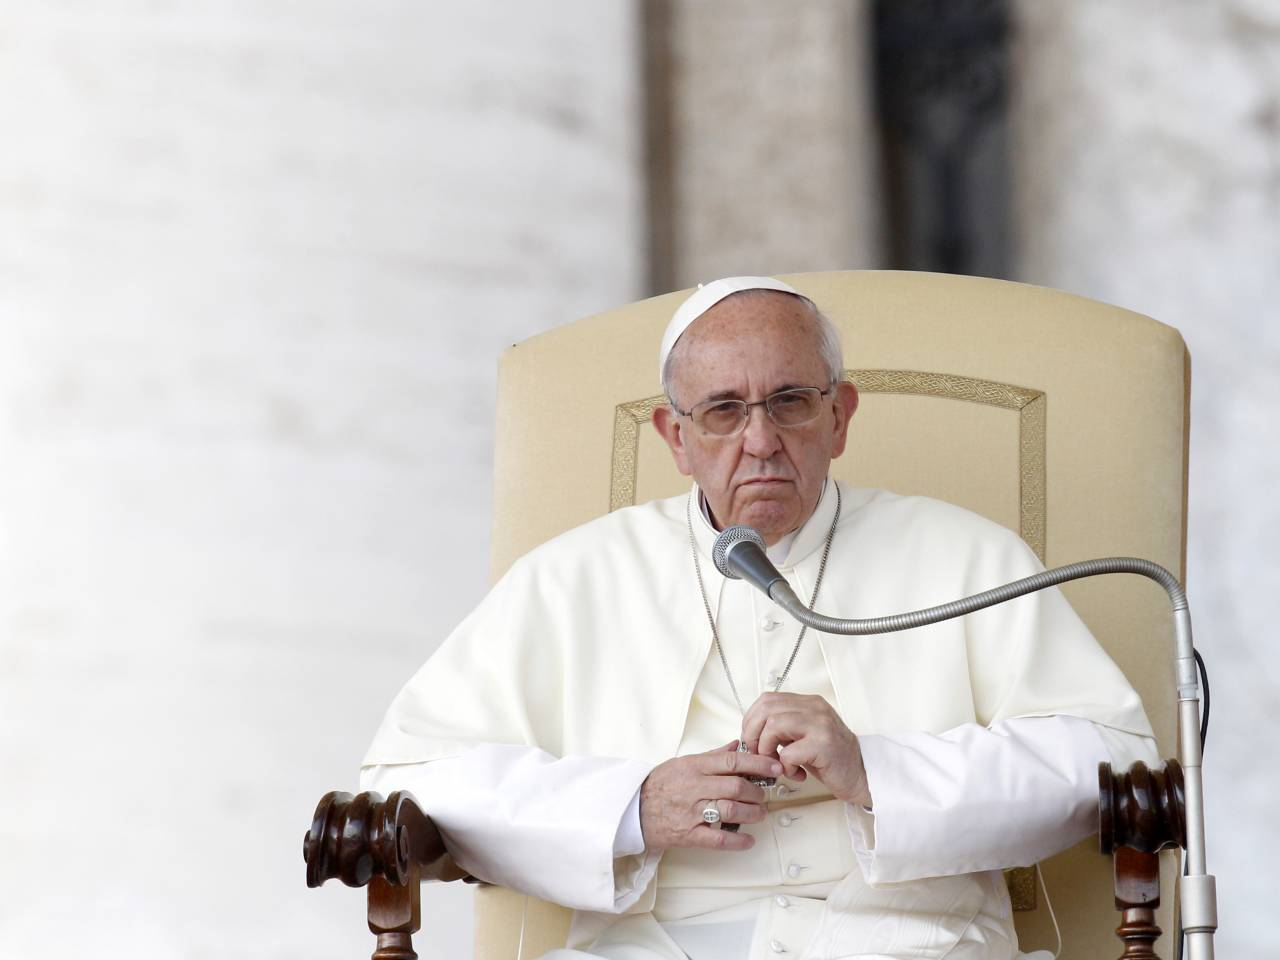 Jesuit Pope Francis, the last pope (antichrist)